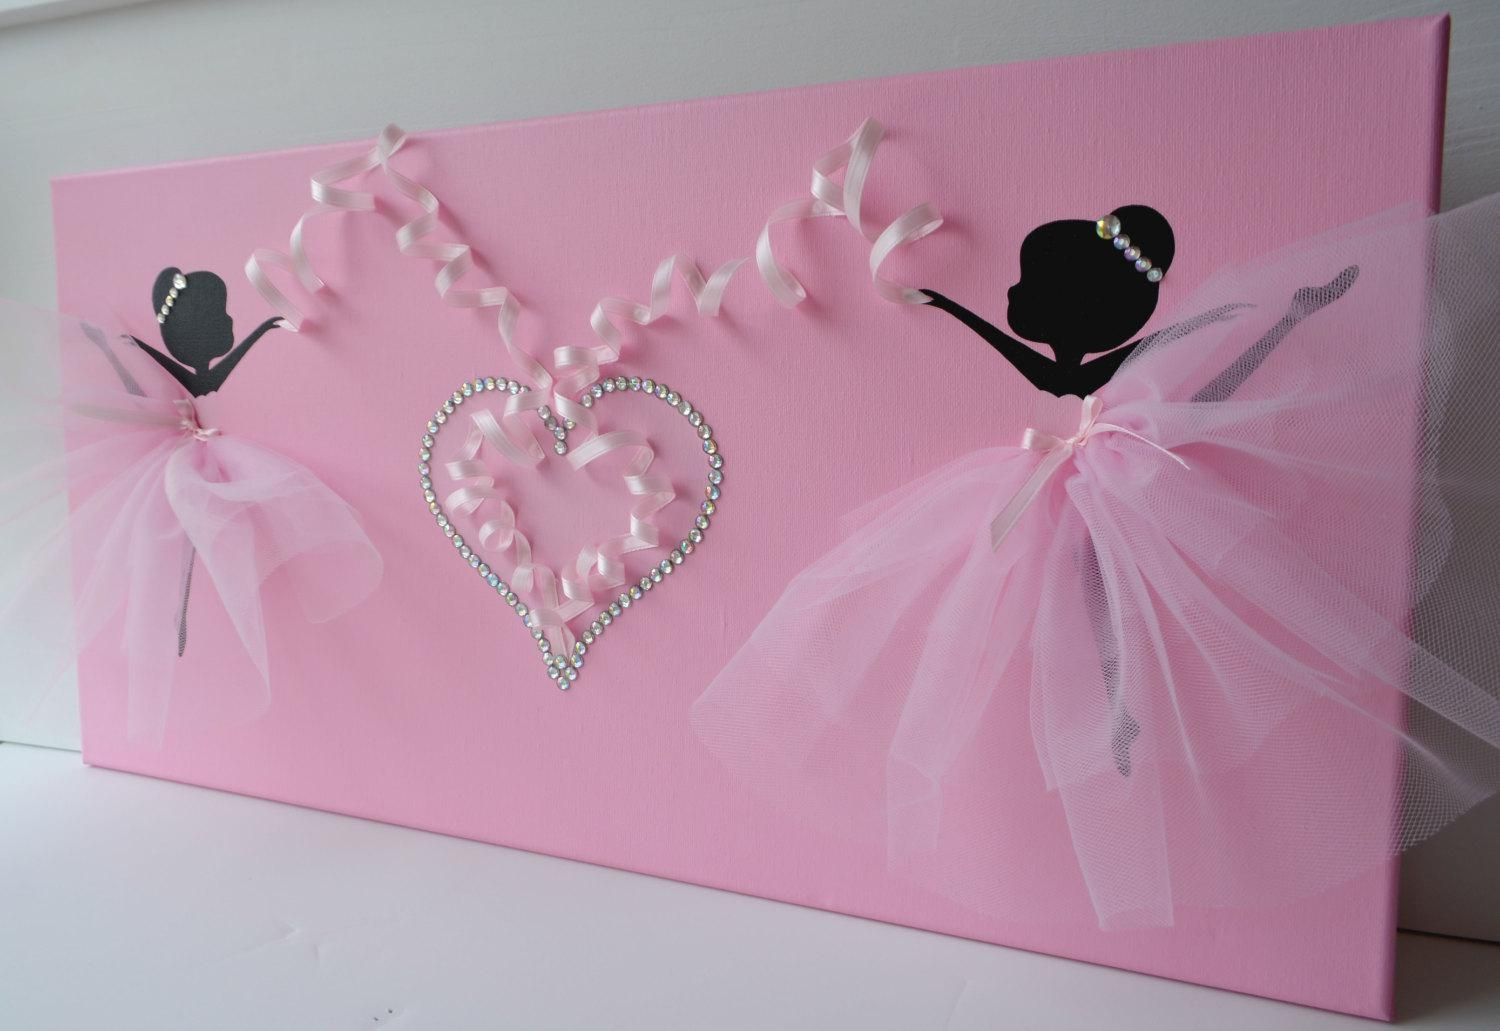 Dancing Ballerinas Wall Decor (View 7 of 20)